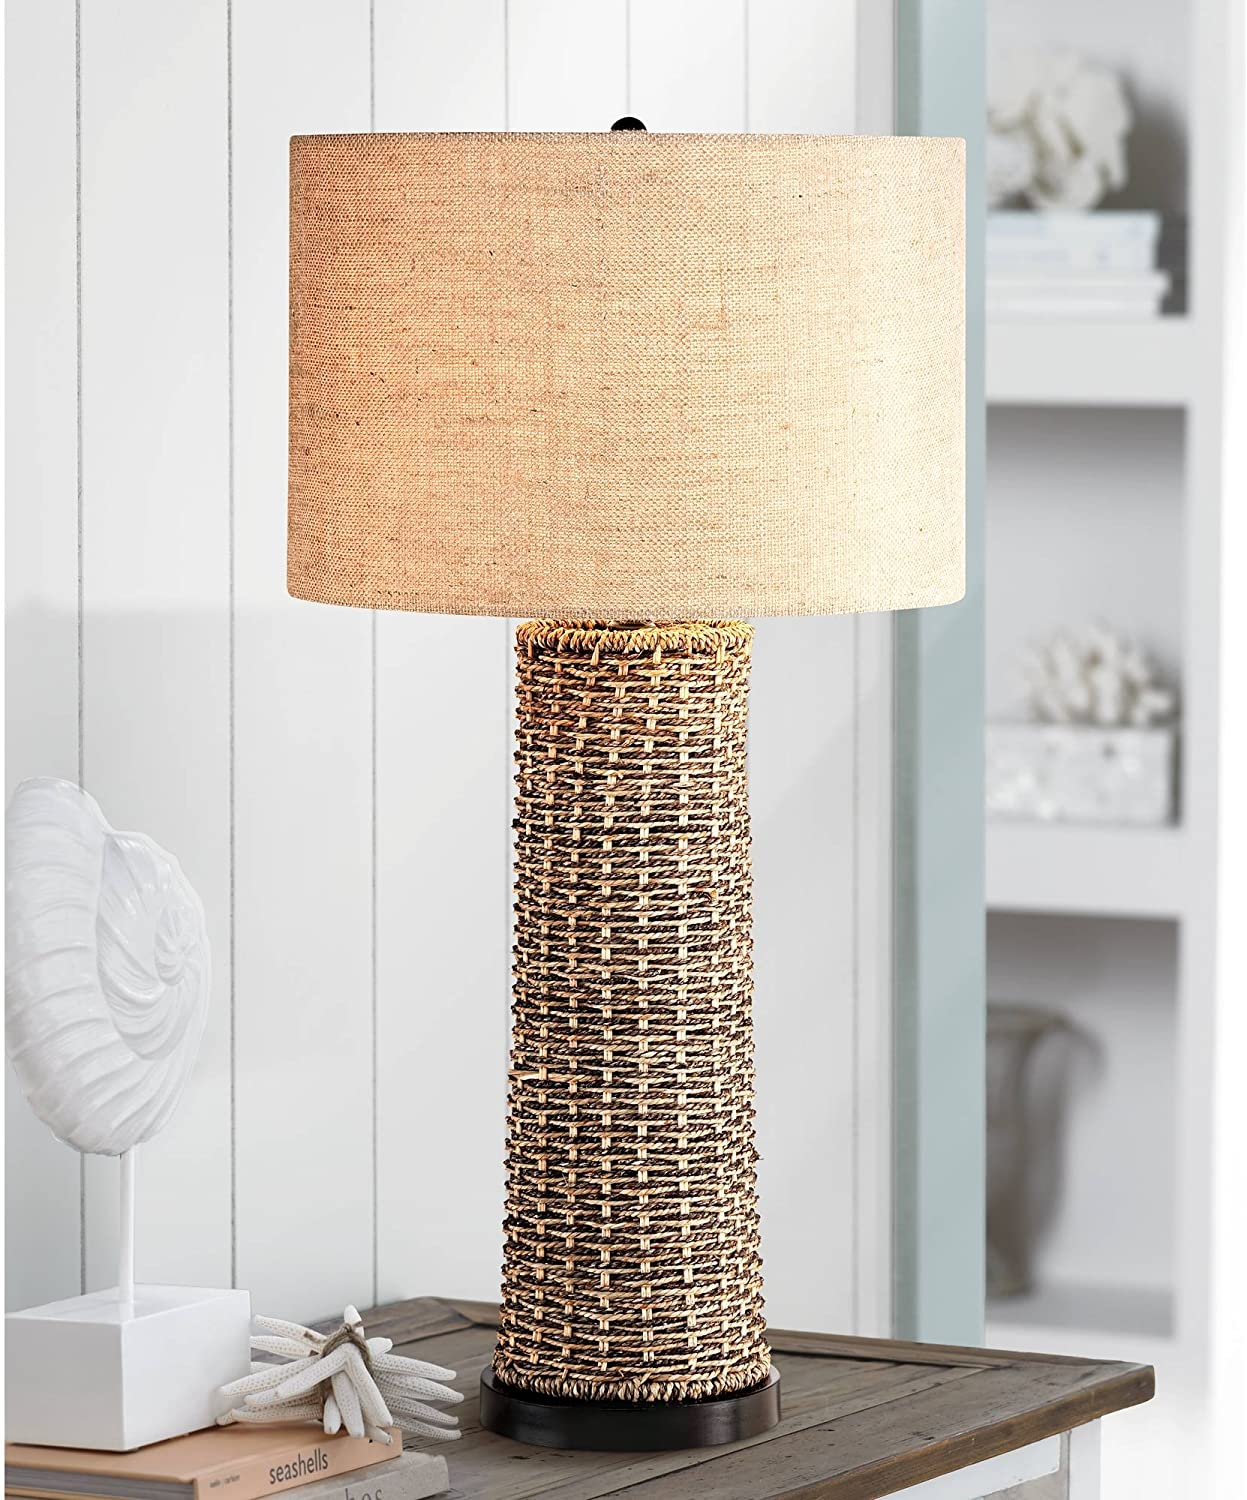 Coastal Table Lamp Woven Seagrass Burlap Drum Shade for Living Room Family Bedroom Bedside Nightstand Office - 360 Lighting